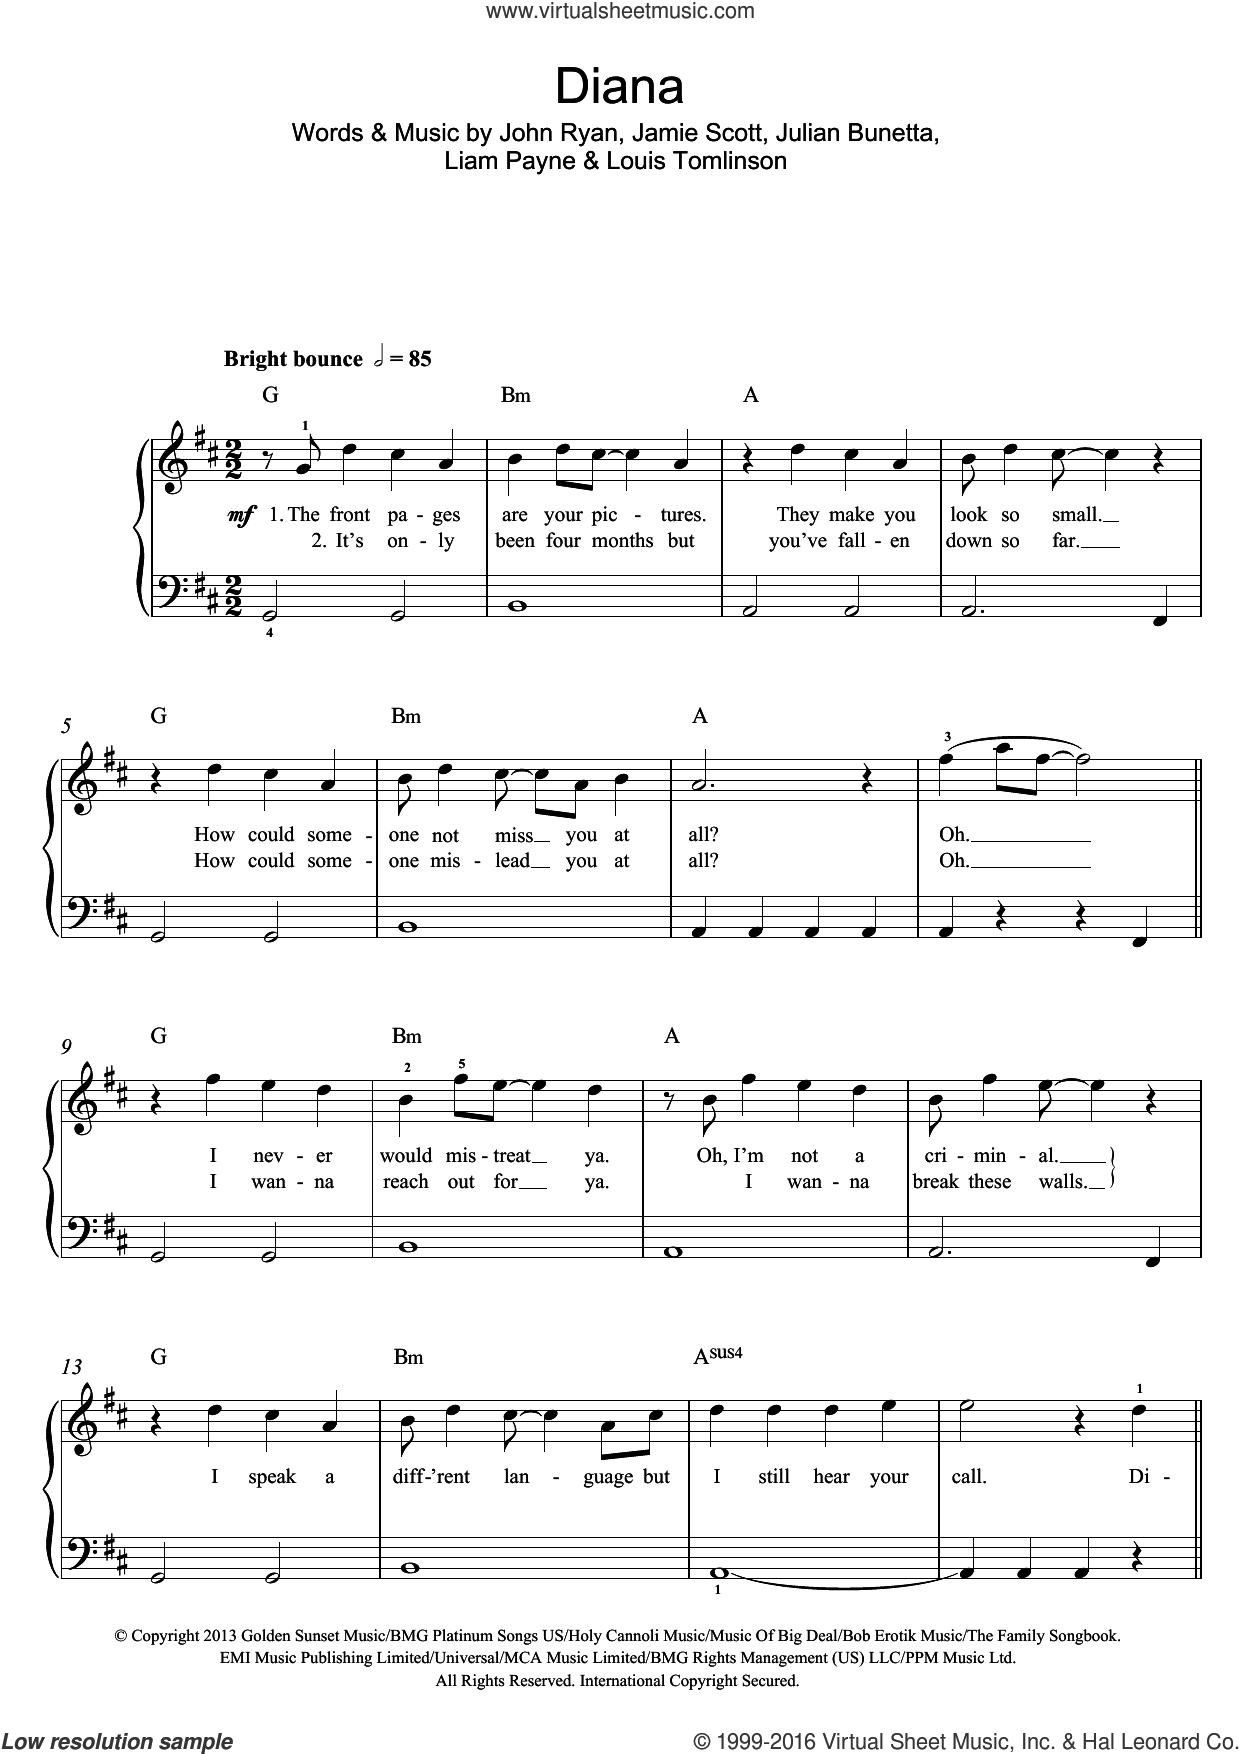 Diana sheet music for voice, piano or guitar by Jamie Scott, One Direction, John Ryan, Julian Bunetta and Louis Tomlinson. Score Image Preview.